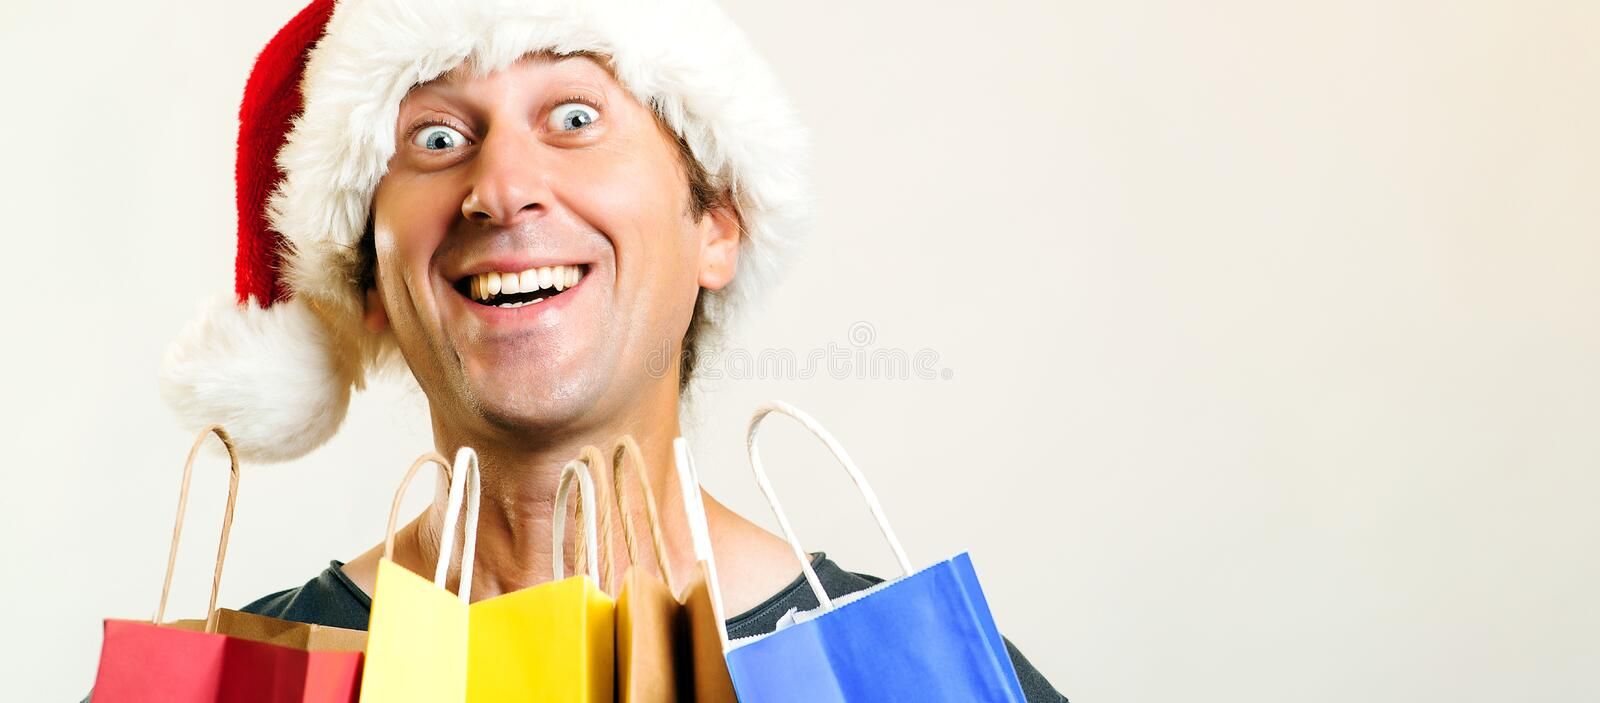 Happy Santa Christmas man with shopping bags, isolated on white background. Holidays, Christmas, sale and people concept. Funny ma royalty free stock photo